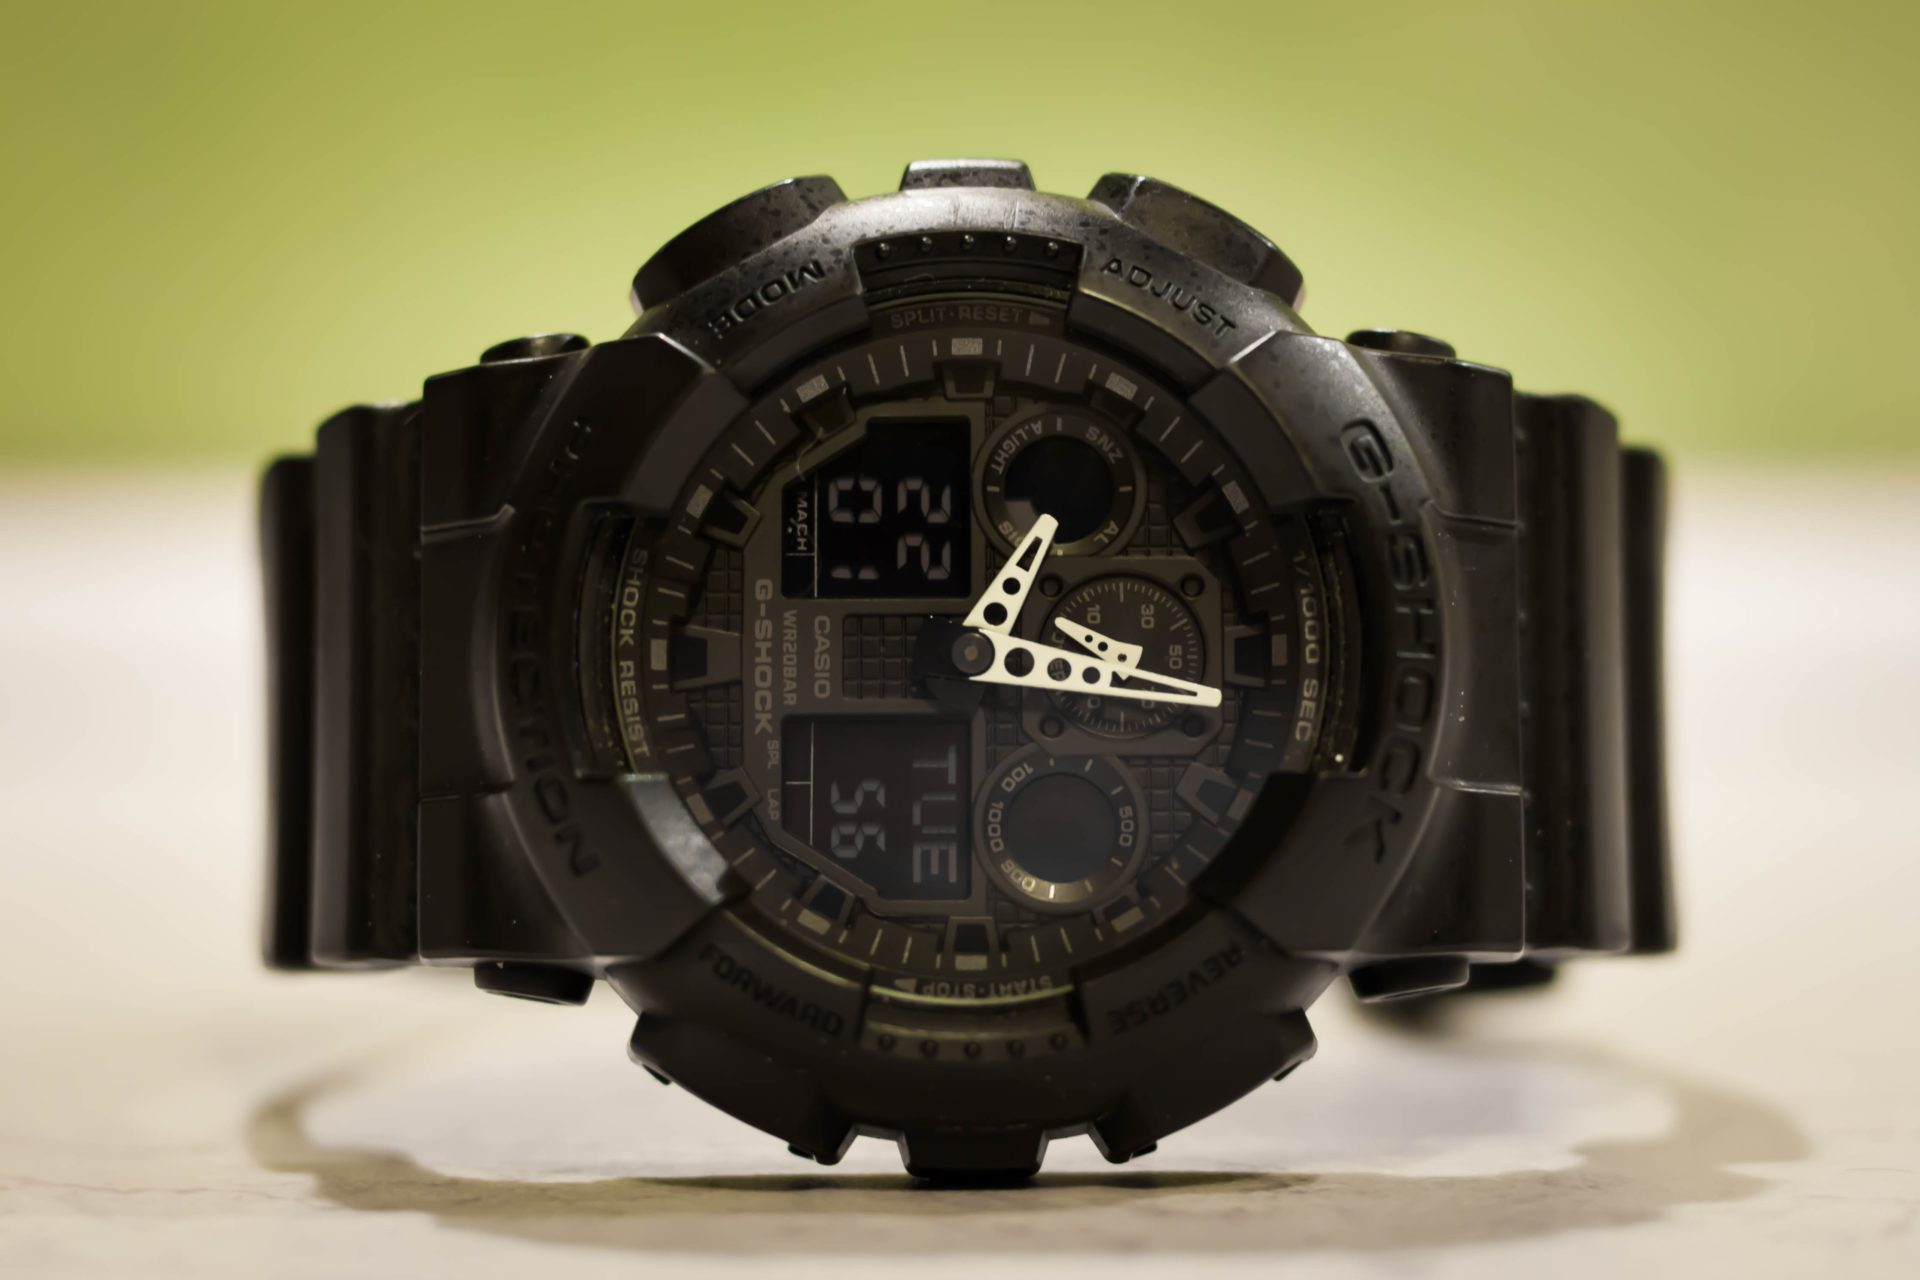 Indestructible G-Shock Watch